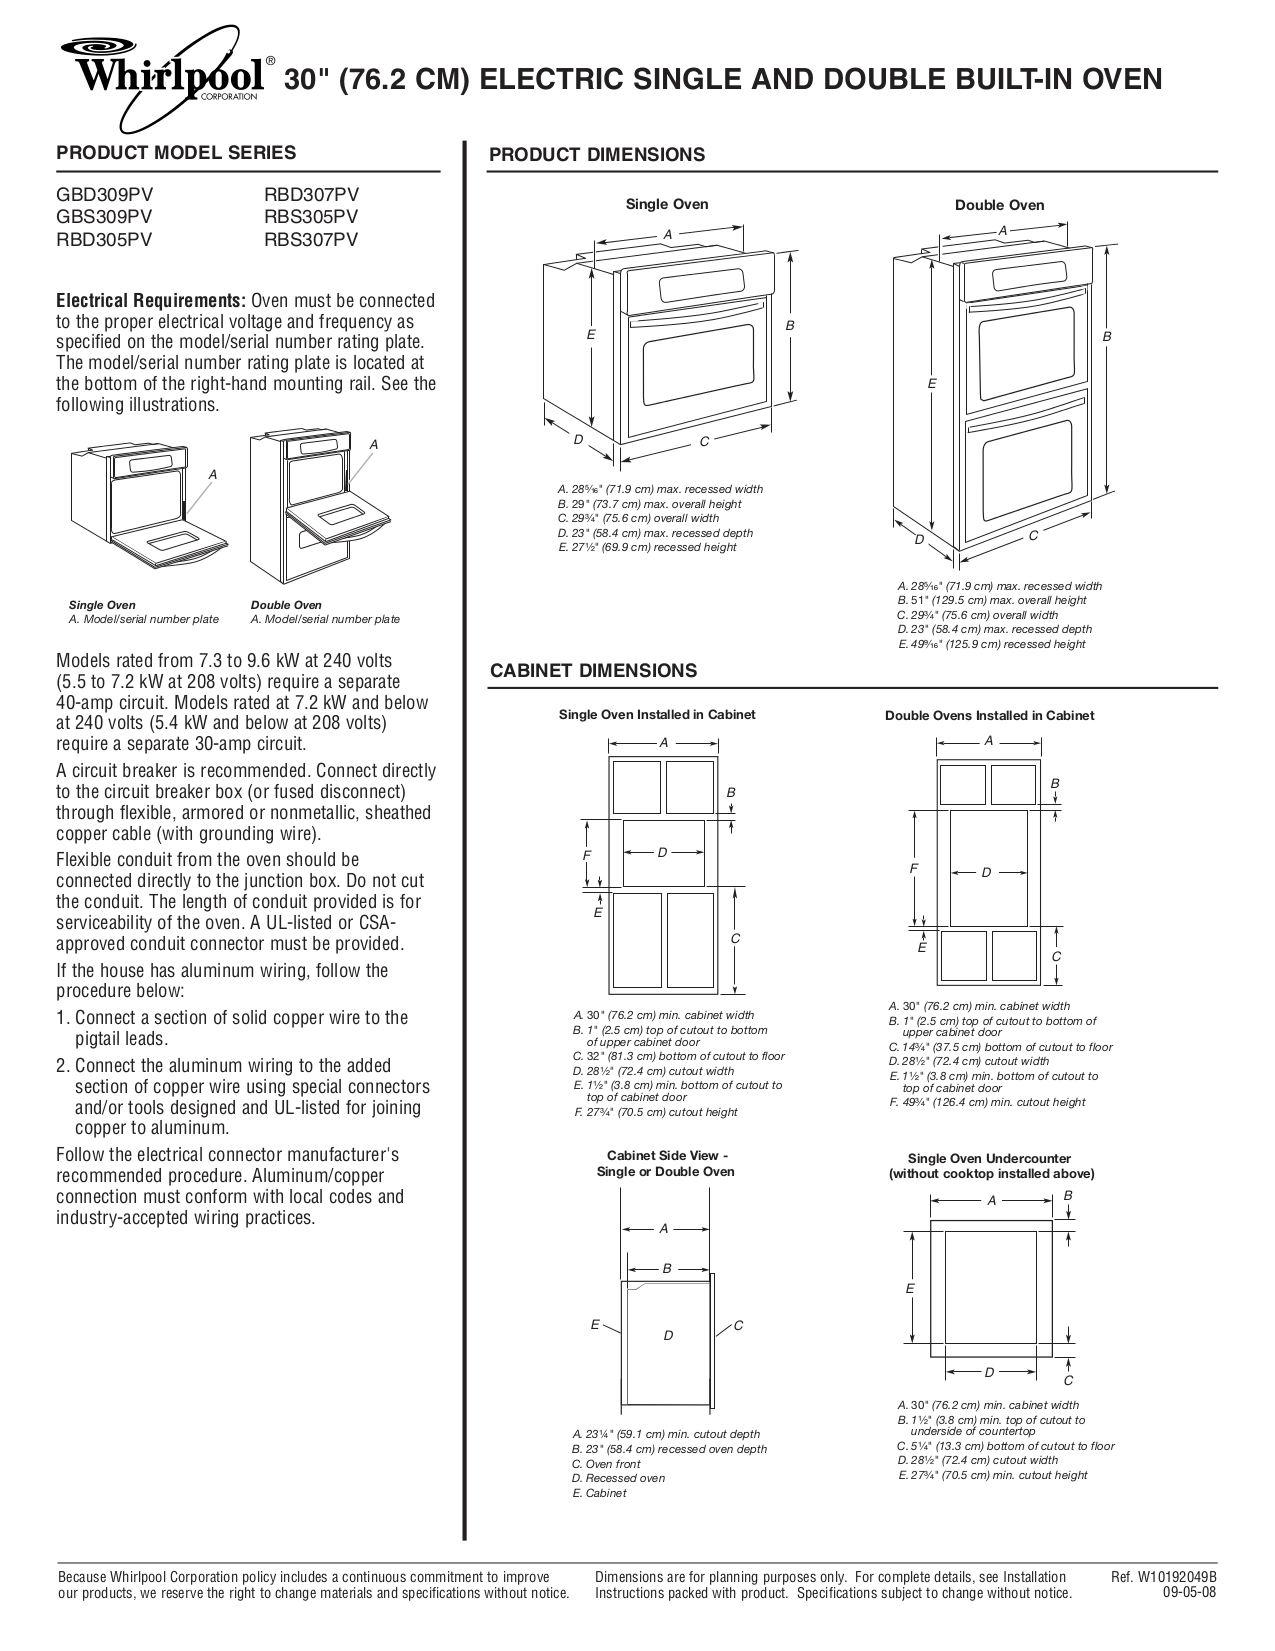 Whirlpool akp 241 05 ix oven download manual for free now 771f.